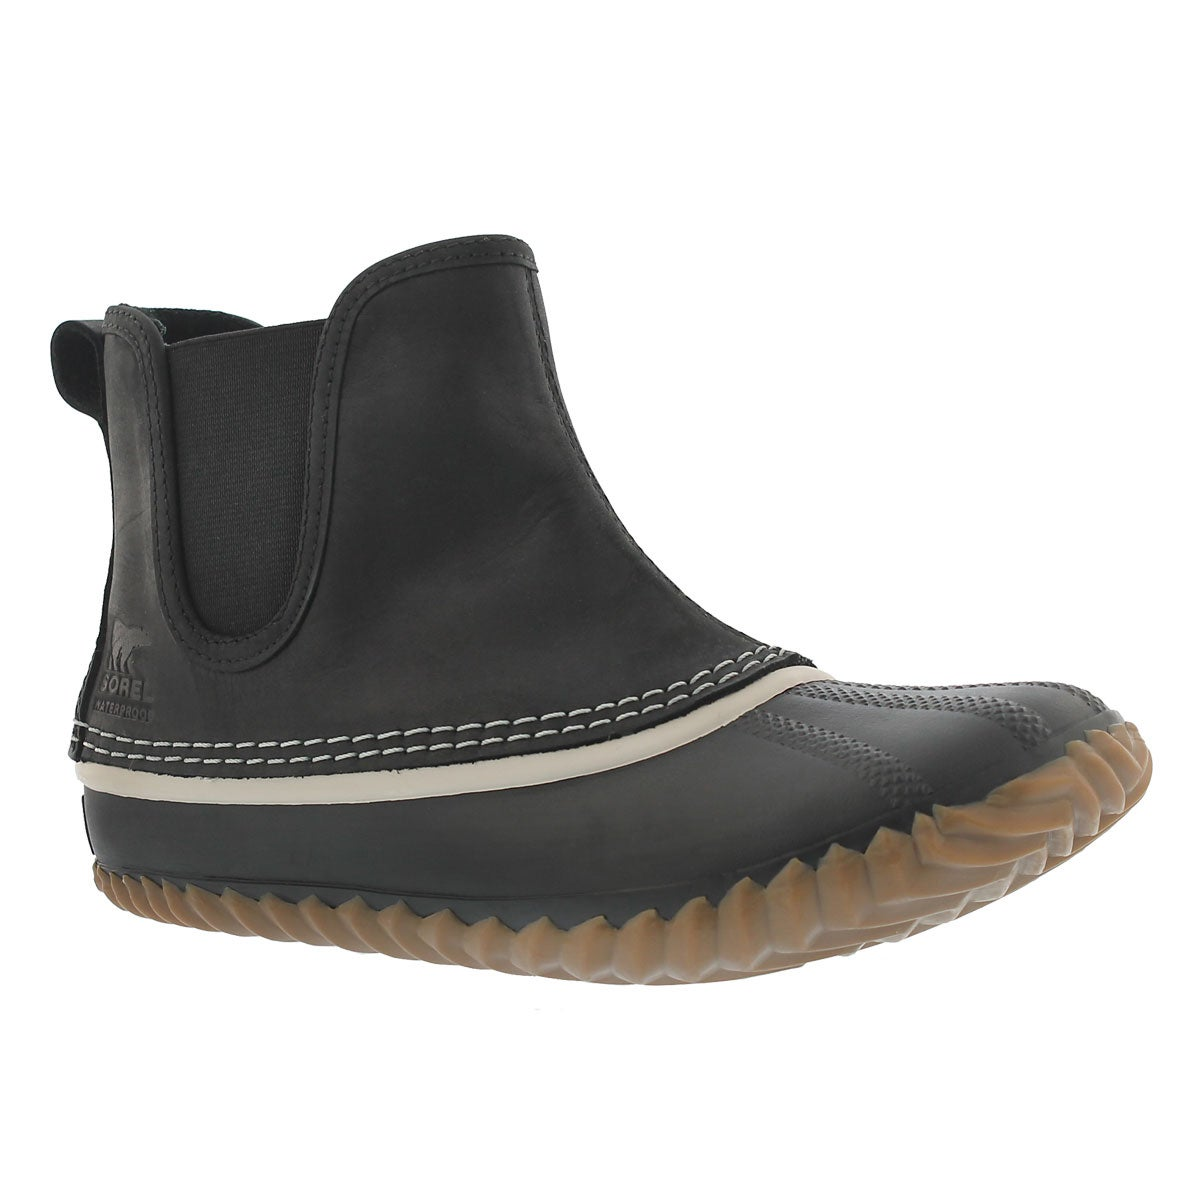 Women's OUT'N ABOUT CHELSEA black duckie boots